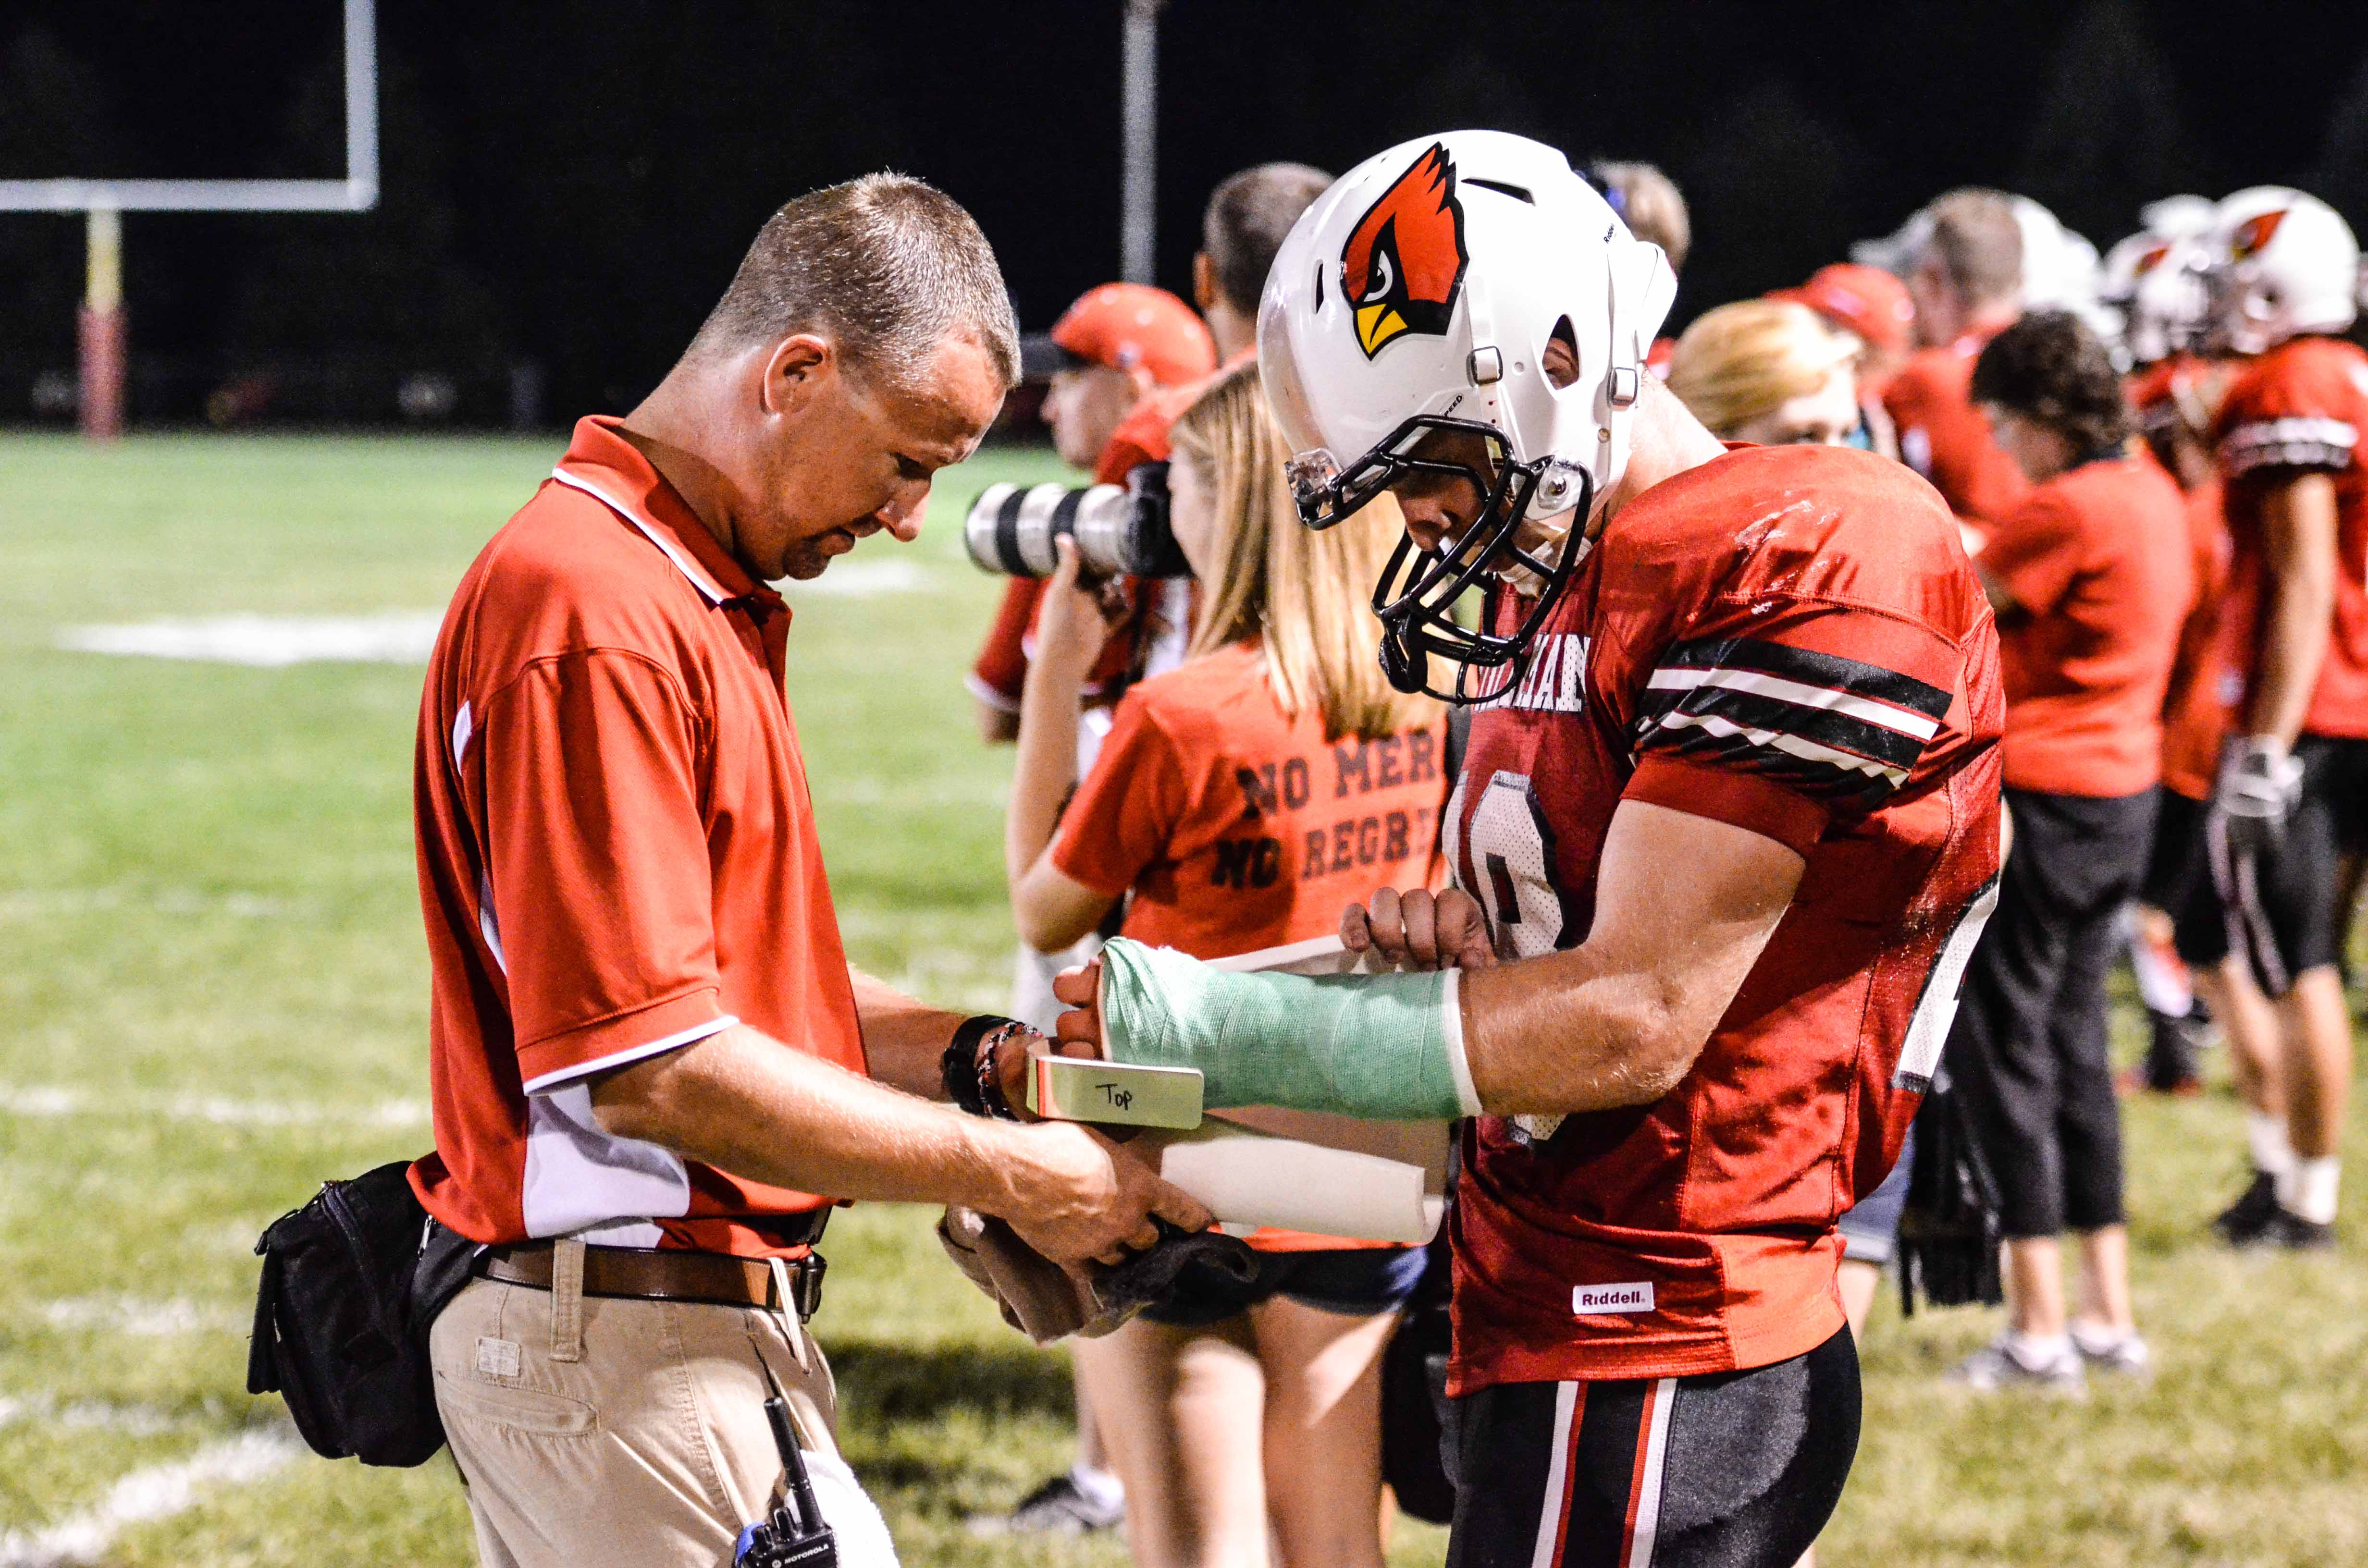 Trainer Aaron removes padding from the most well wrapped cast in high school football